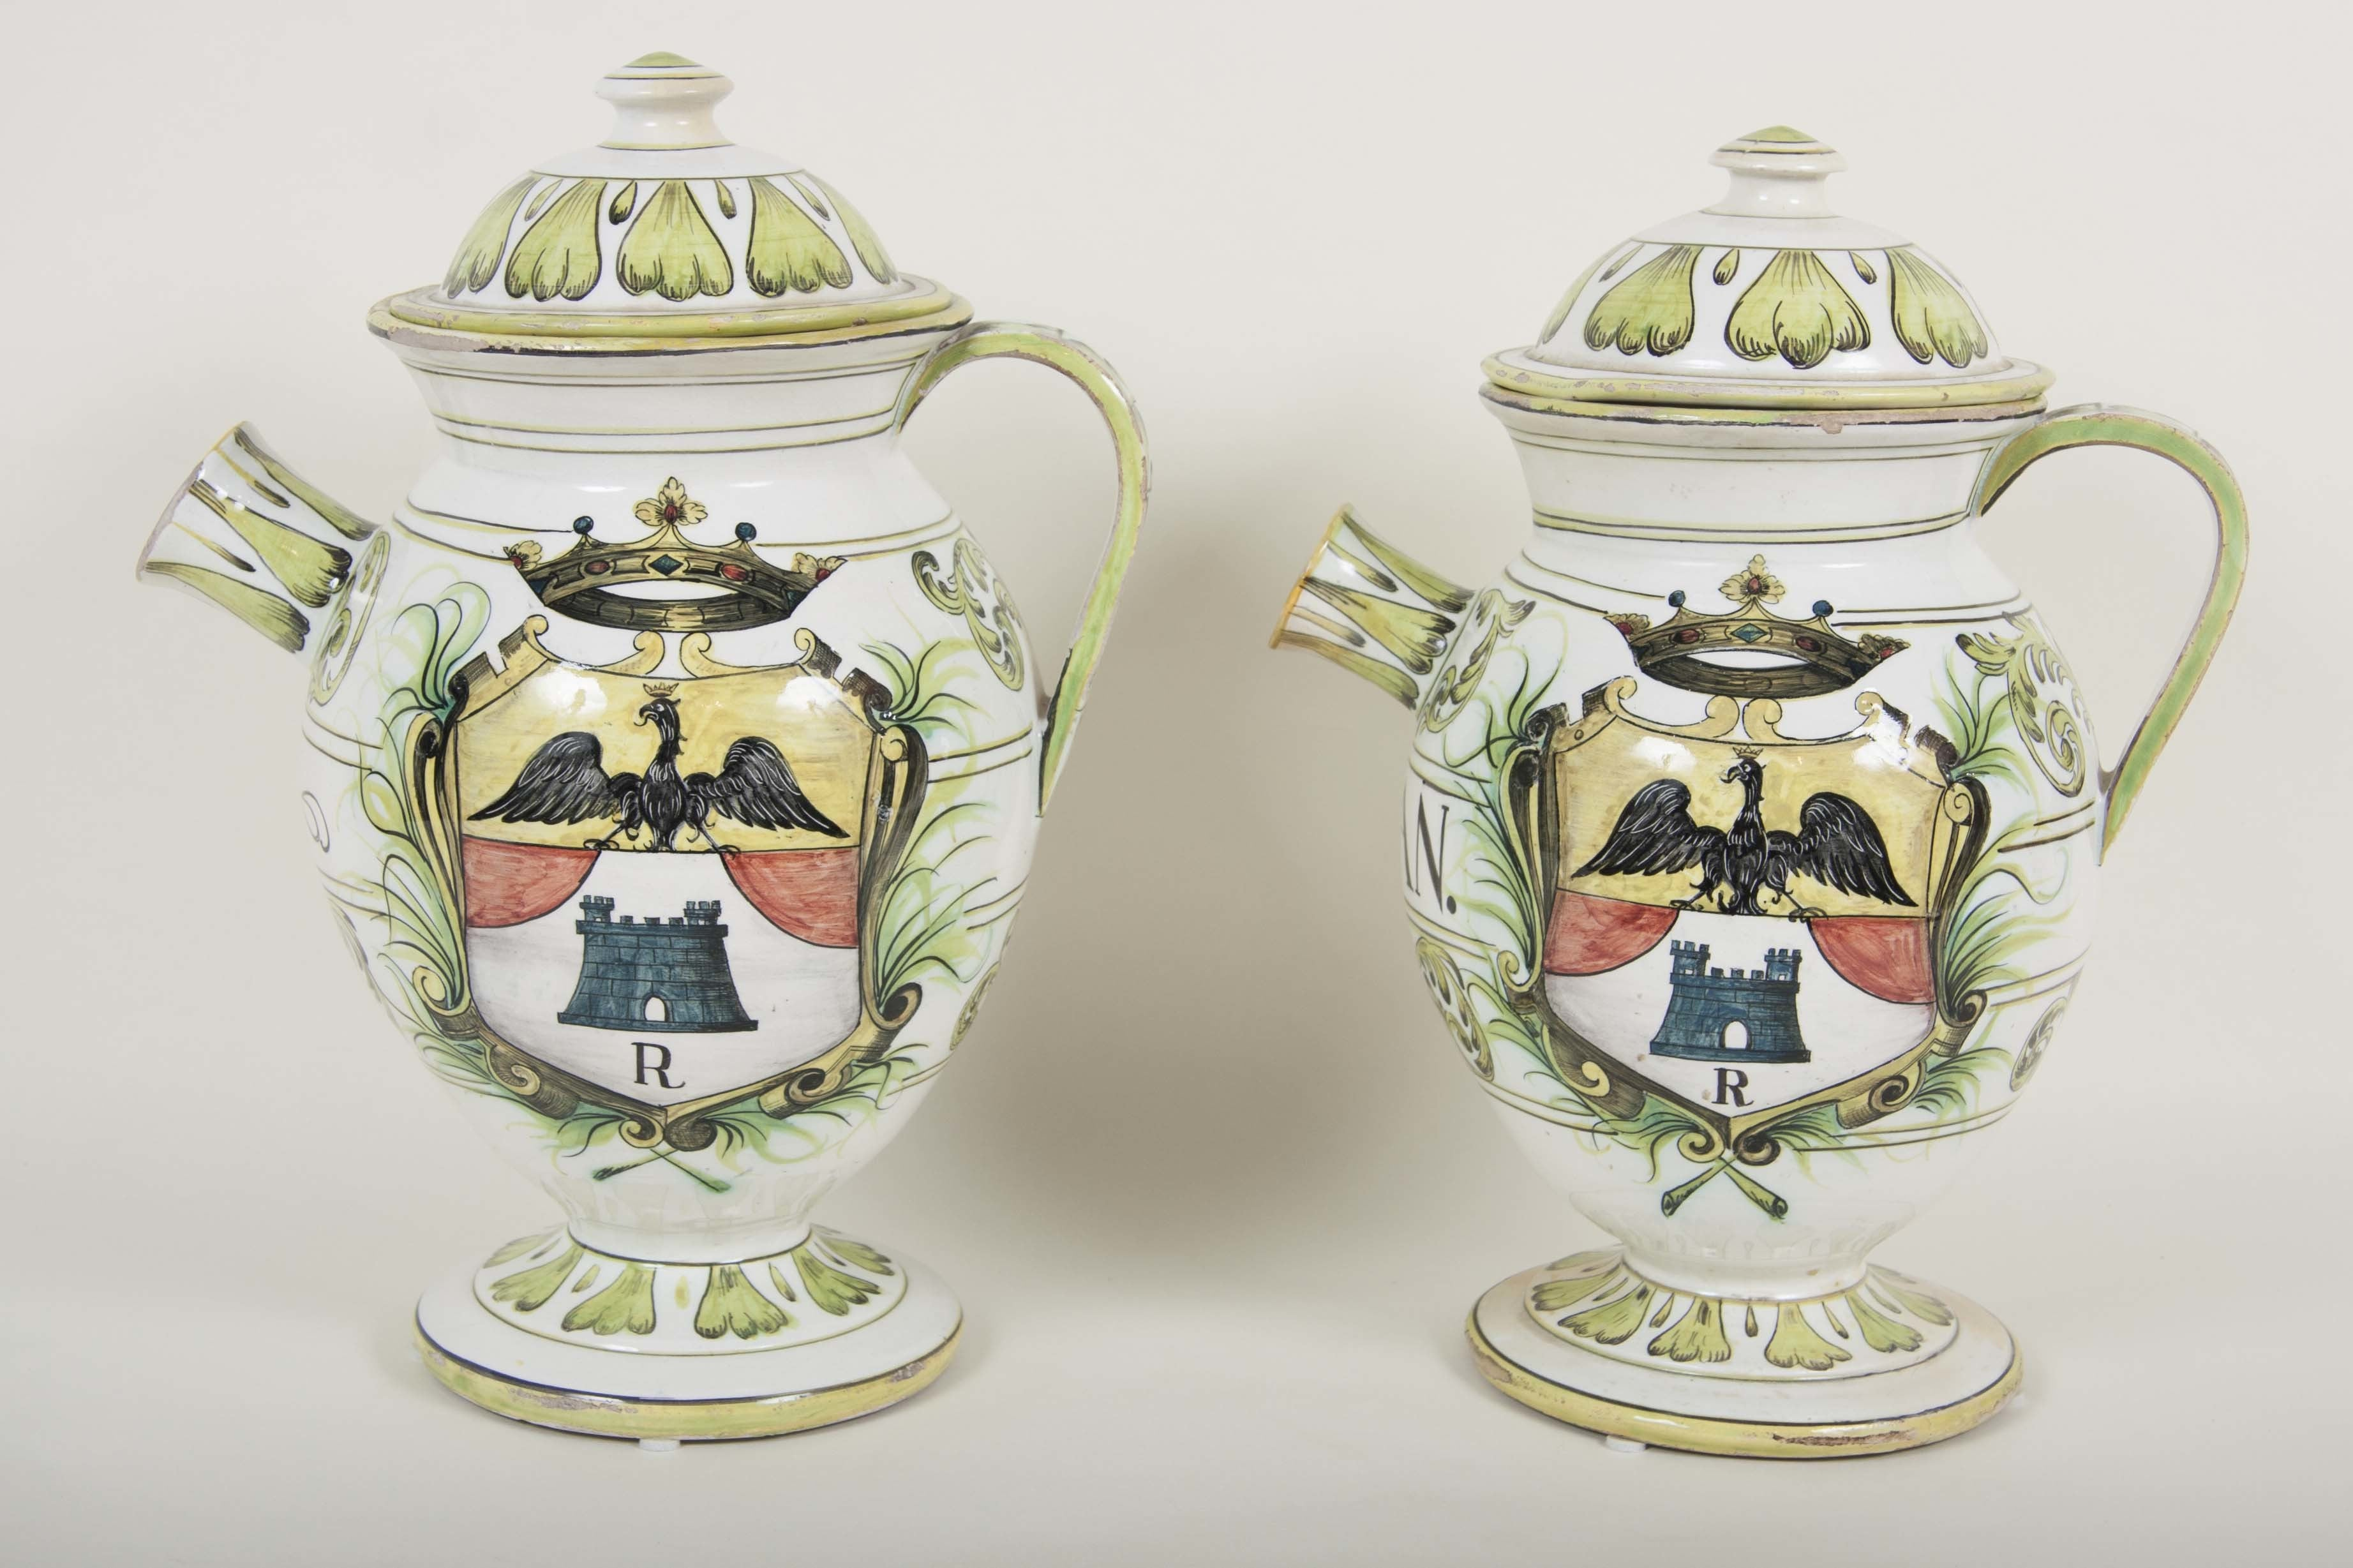 Pair of Majolica Apothecary Jars